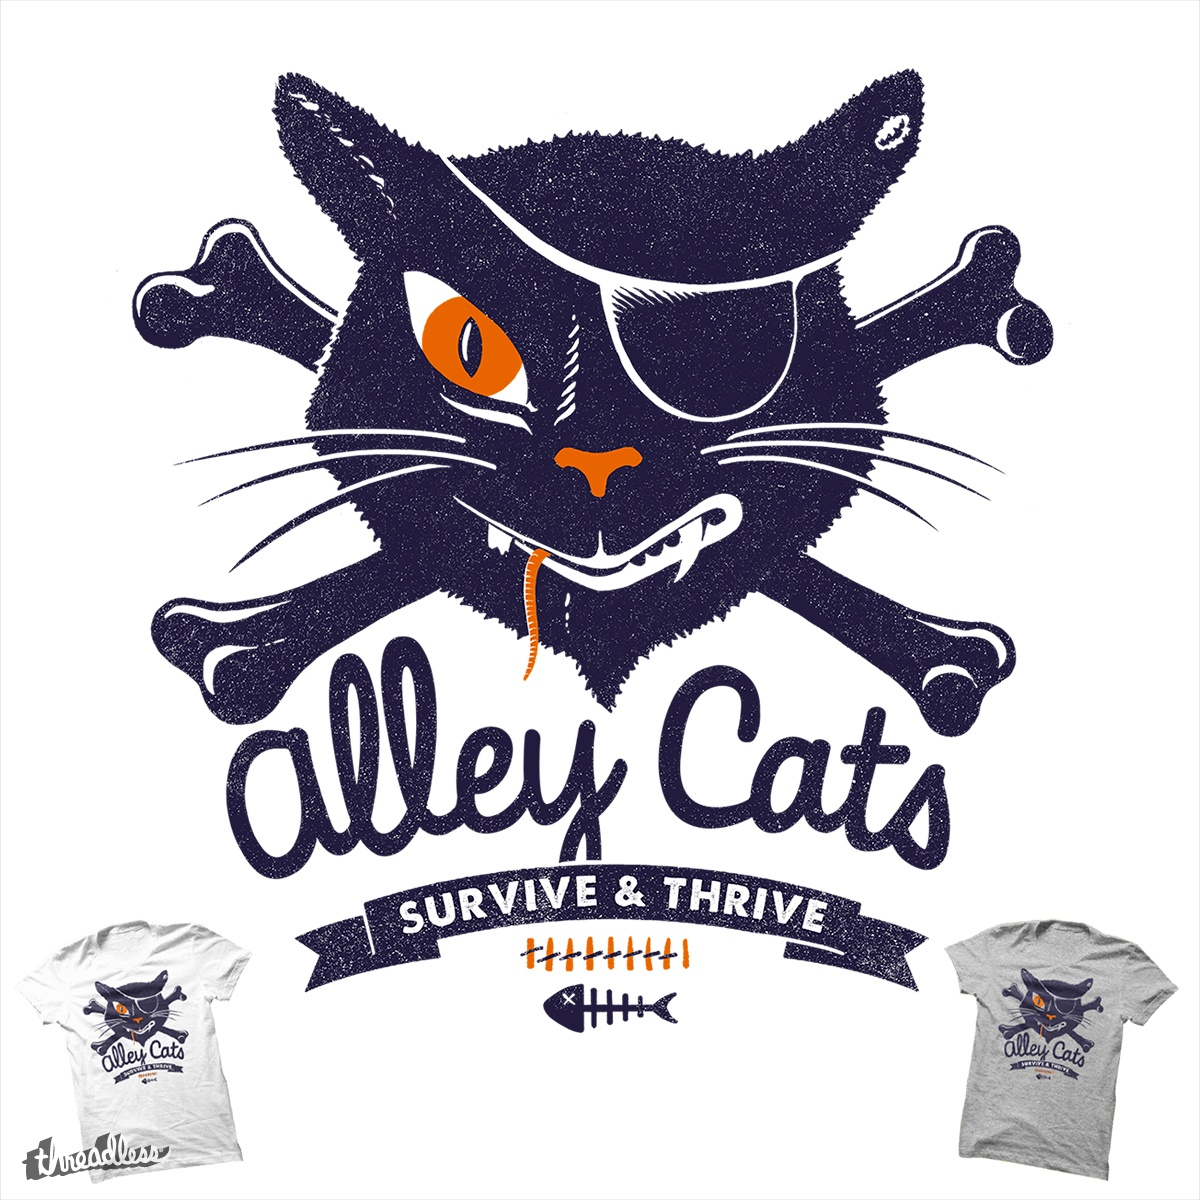 Alley Cats, a cool t-shirt design